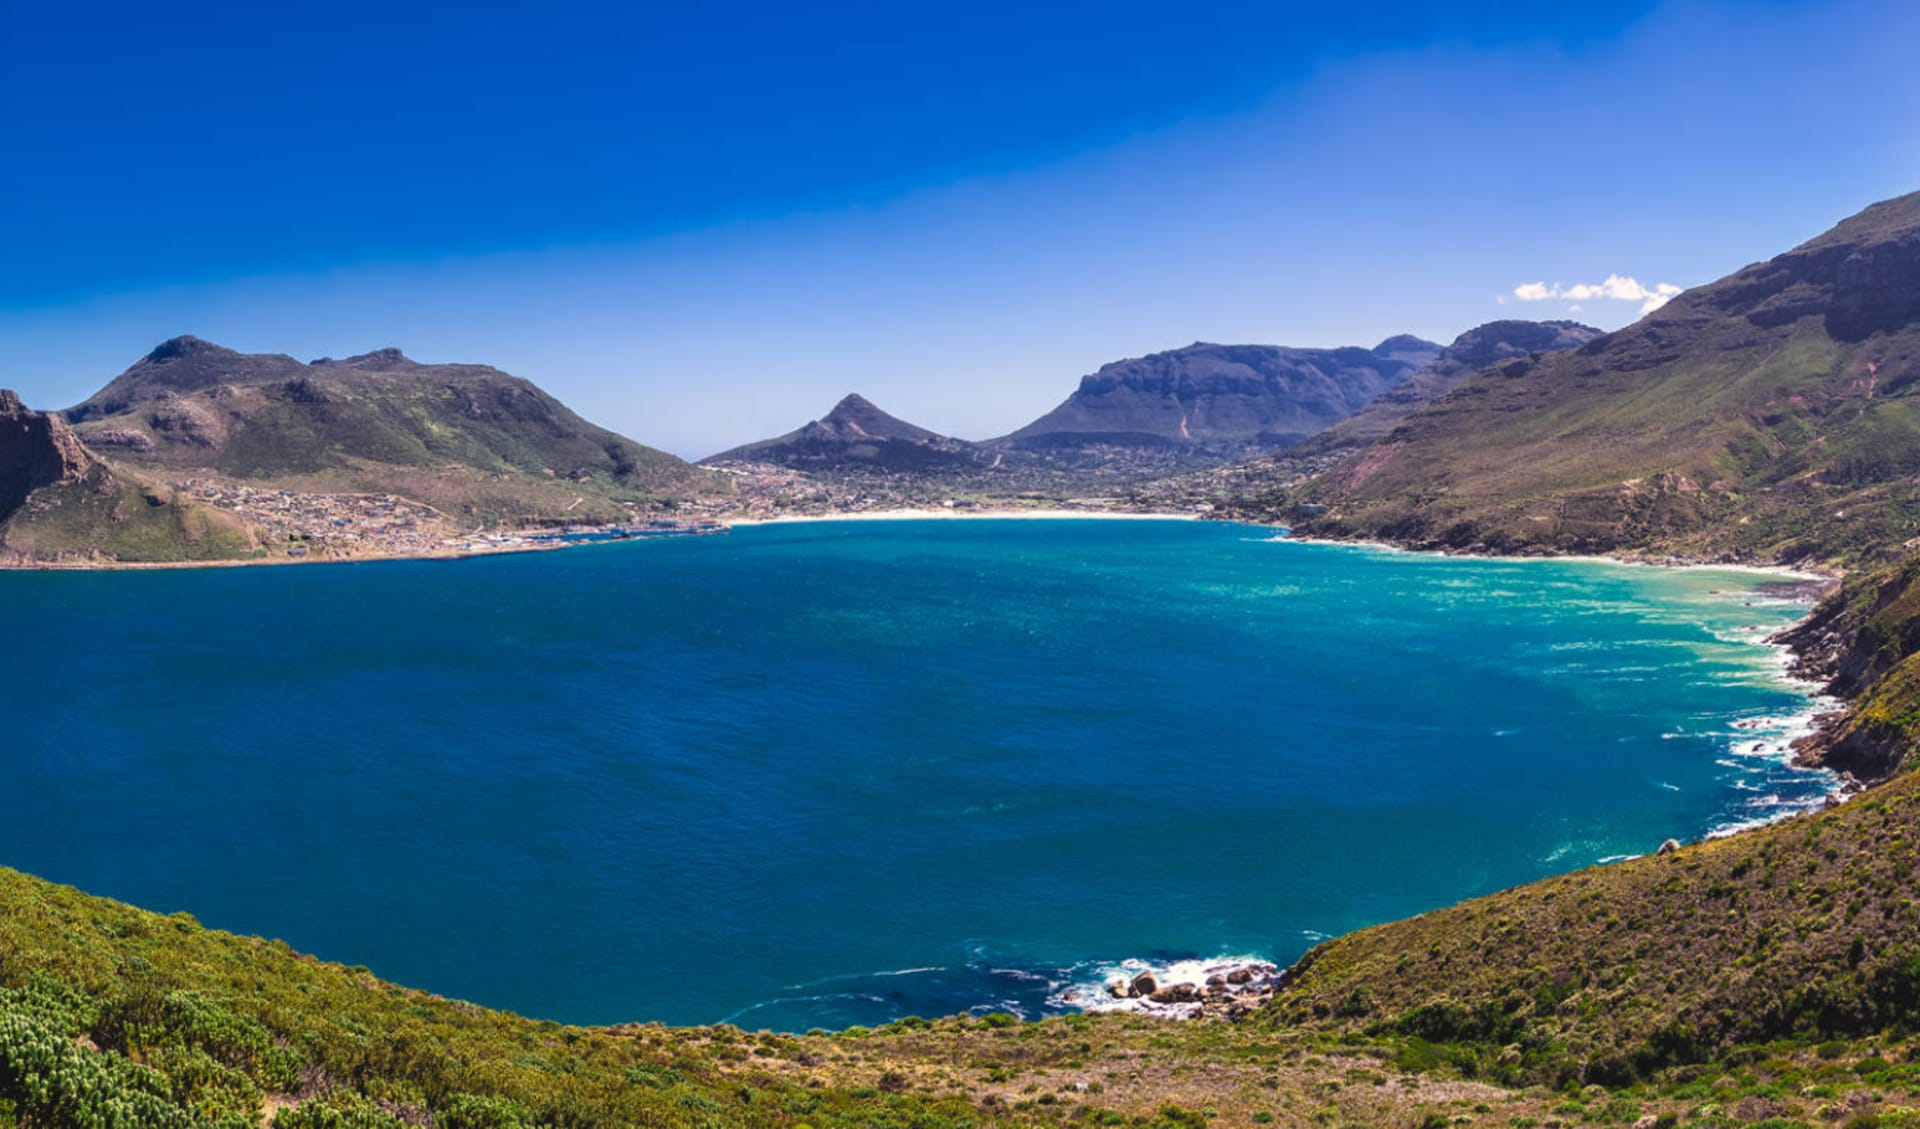 South Africa Exclusive 20 Tage ab Johannesburg: Südafrika - Kapstadt - Hout Bay